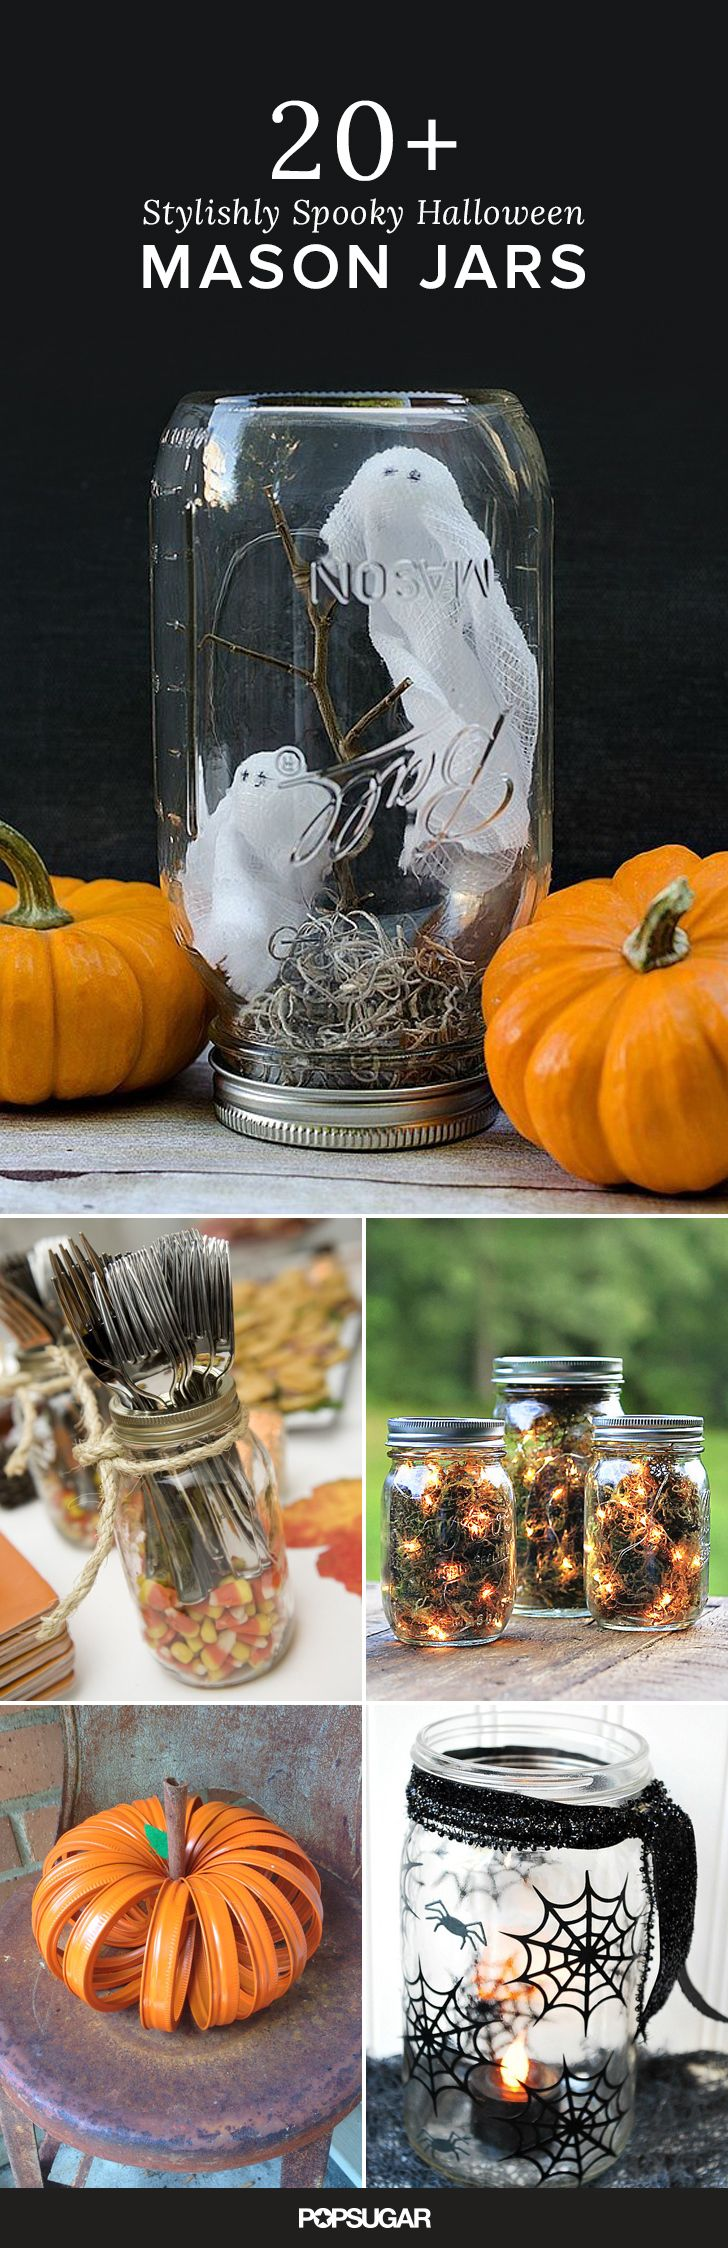 Halloween offers a great opportunity to use mason jars in brand new ways…